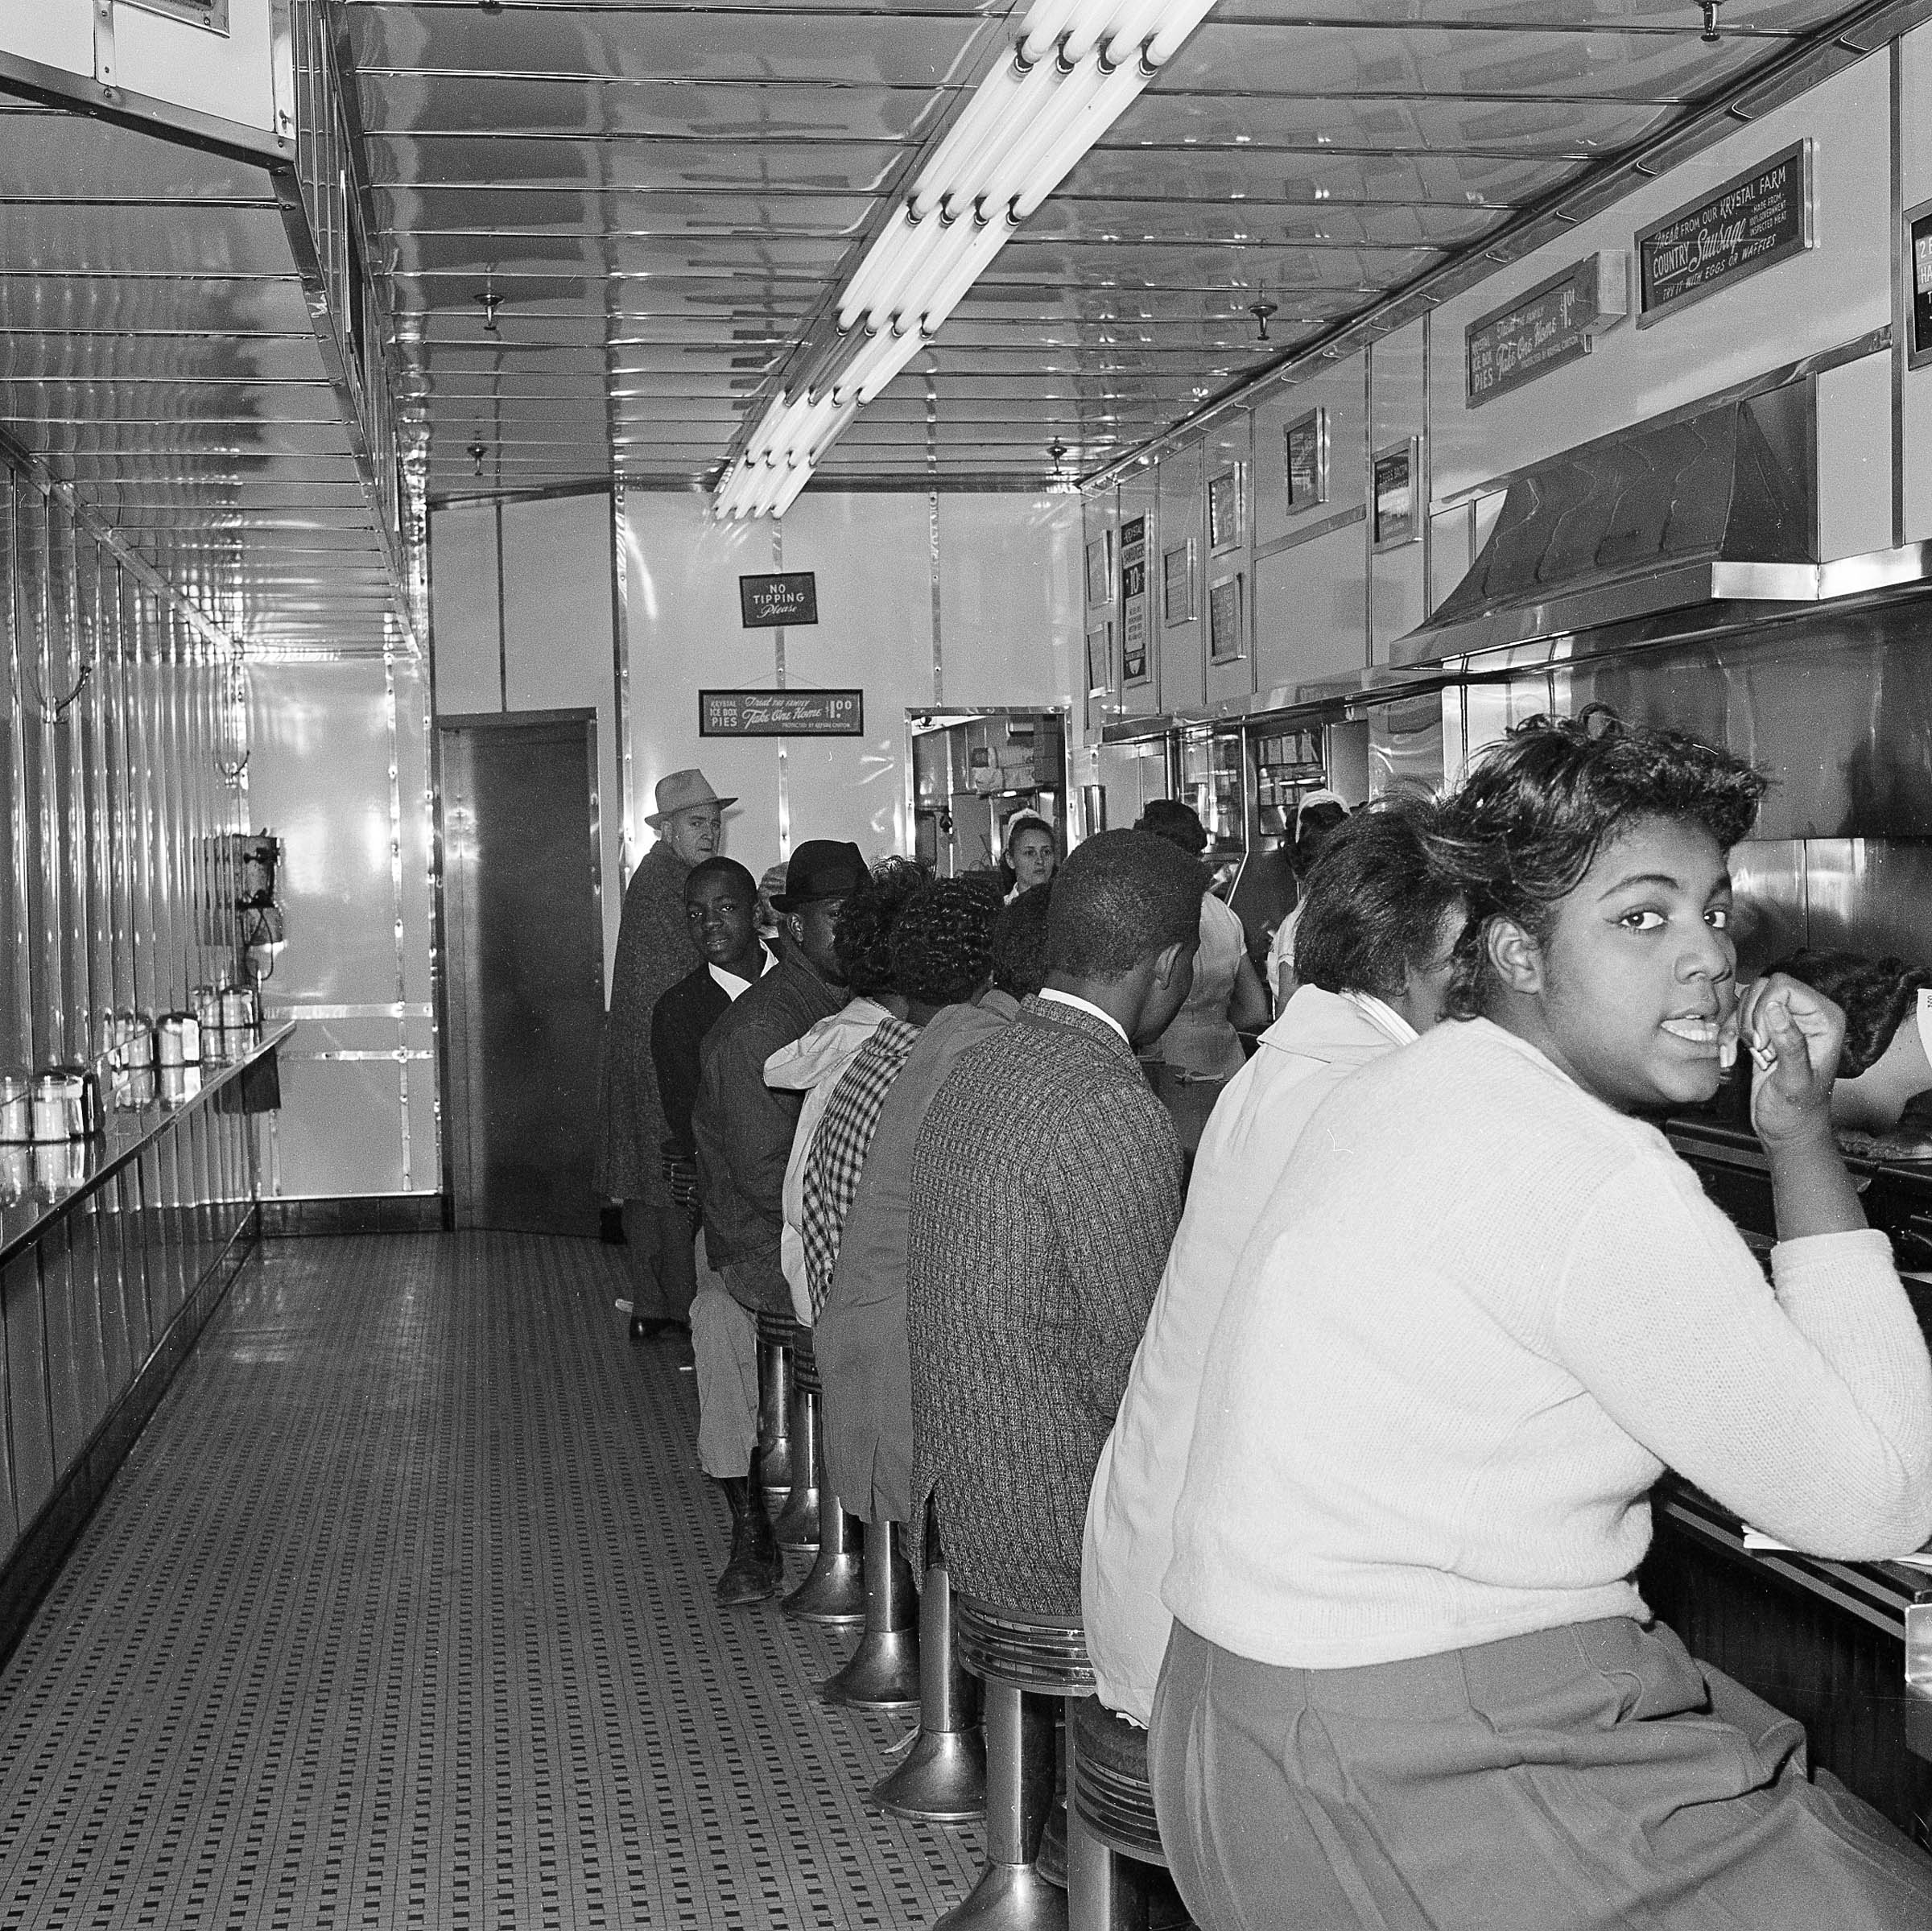 """PAGE 61: IN EXAMINING AFRICAN-AMERICANS' QUEST FOR FREEDOM, NONVIOLENT DIRECT-ACTION TACTICS VARIED BASED ON, IN THE WORDS OF CONGRESSMAN JOHN LEWIS, """"DIFFERENT FORMS OF OPPRESSION."""" PICTURED HERE, ATLANTA UNIVERSITY CENTER STUDENTS STAGE A SIT-IN AT A DOWNTOWN ATLANTA LUNCH COUNTER IN JANUARY 1964 (PERMISSION OF THE ASSOCIATED PRESS)."""